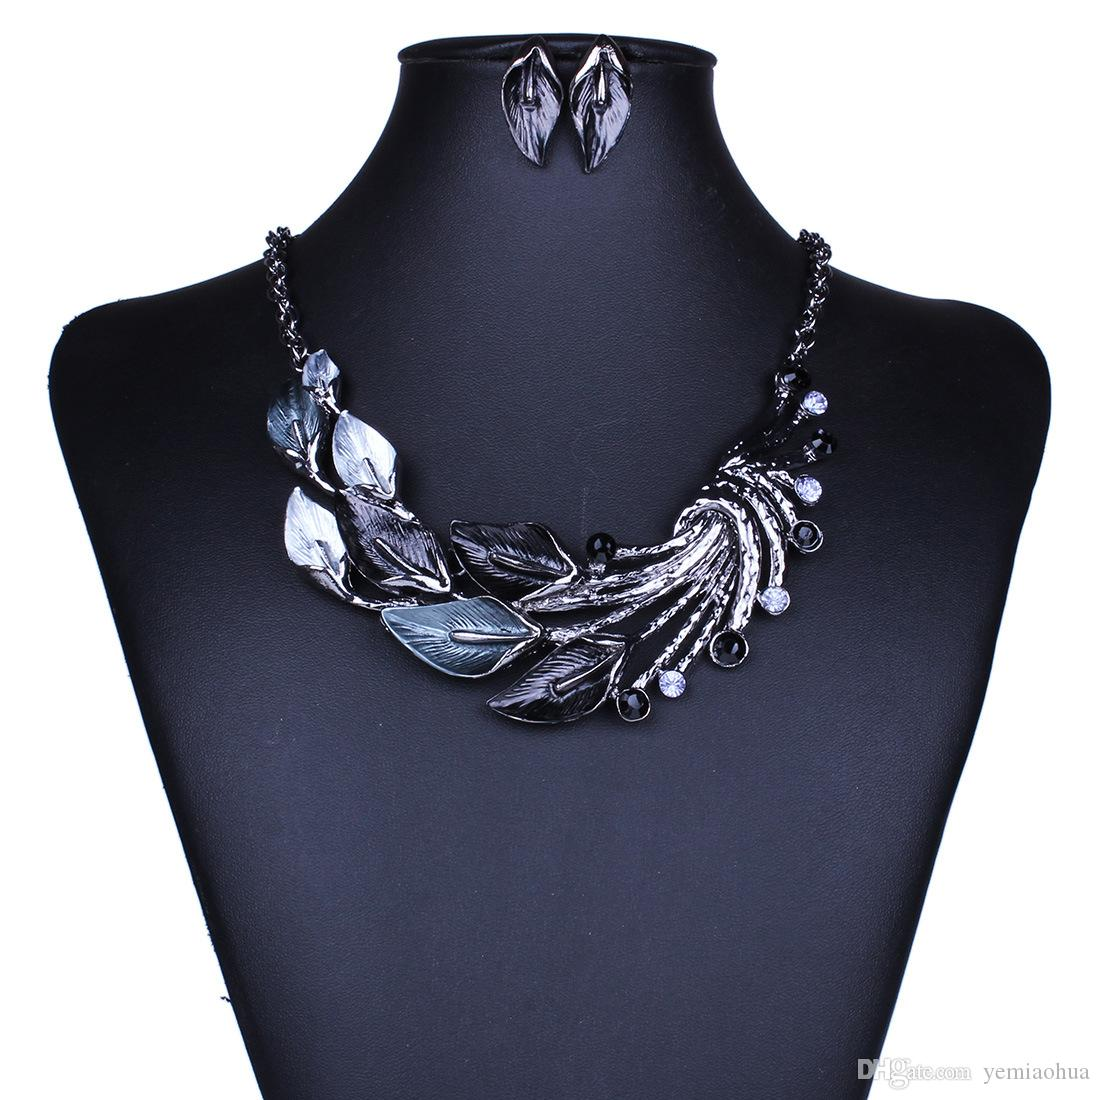 New Crystal Flower Jewelry Set Necklace Earrings African Maxi Statement Jewelry Wedding Bridal Pendant Dress Accessories